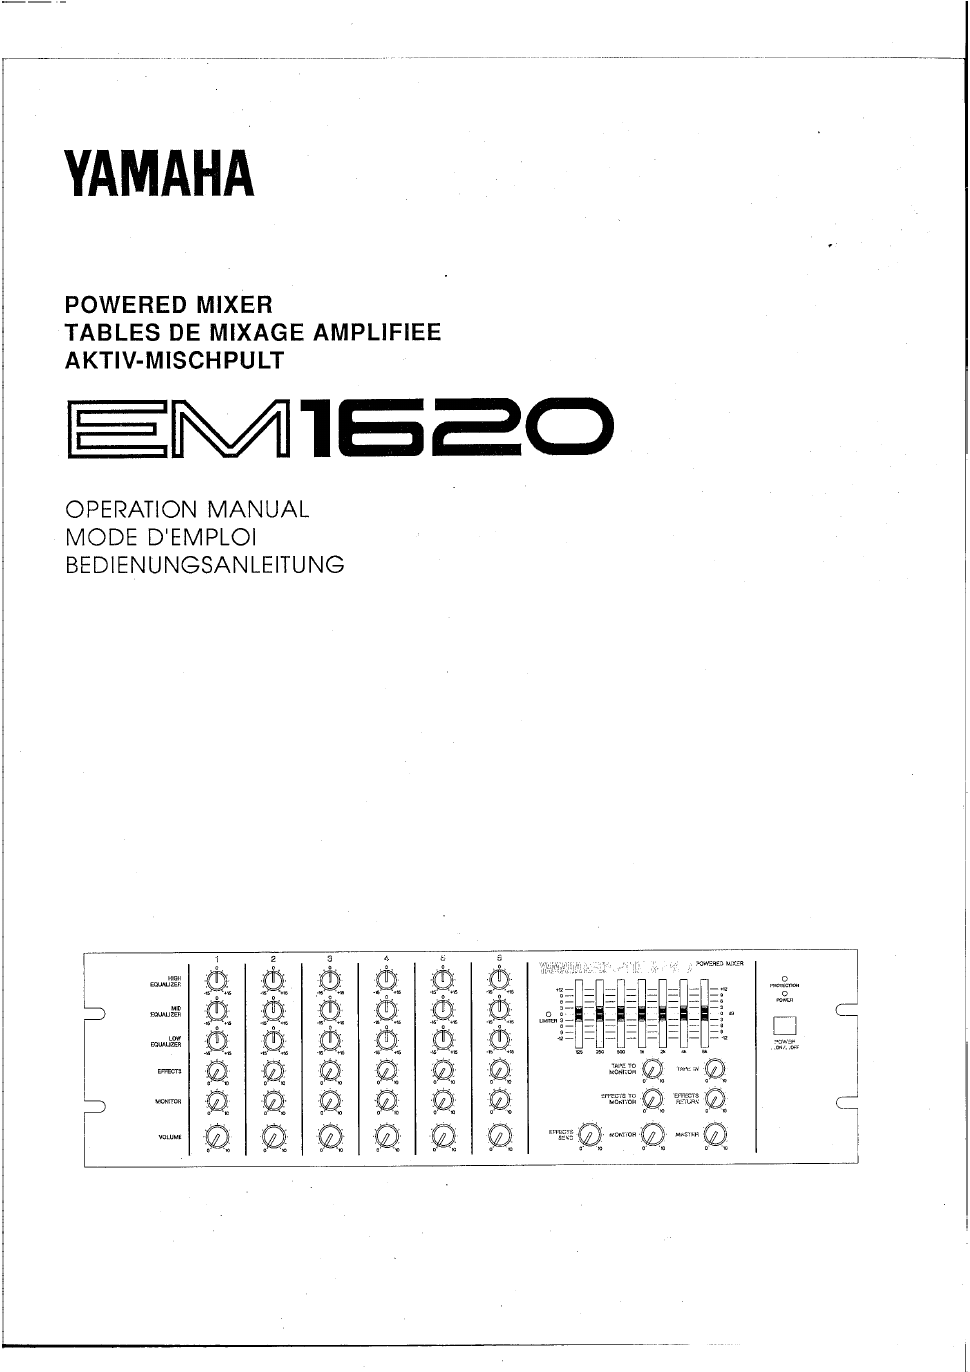 background image Array - yamaha em1620 operation manual free pdf download  48 pages rh manualagent com